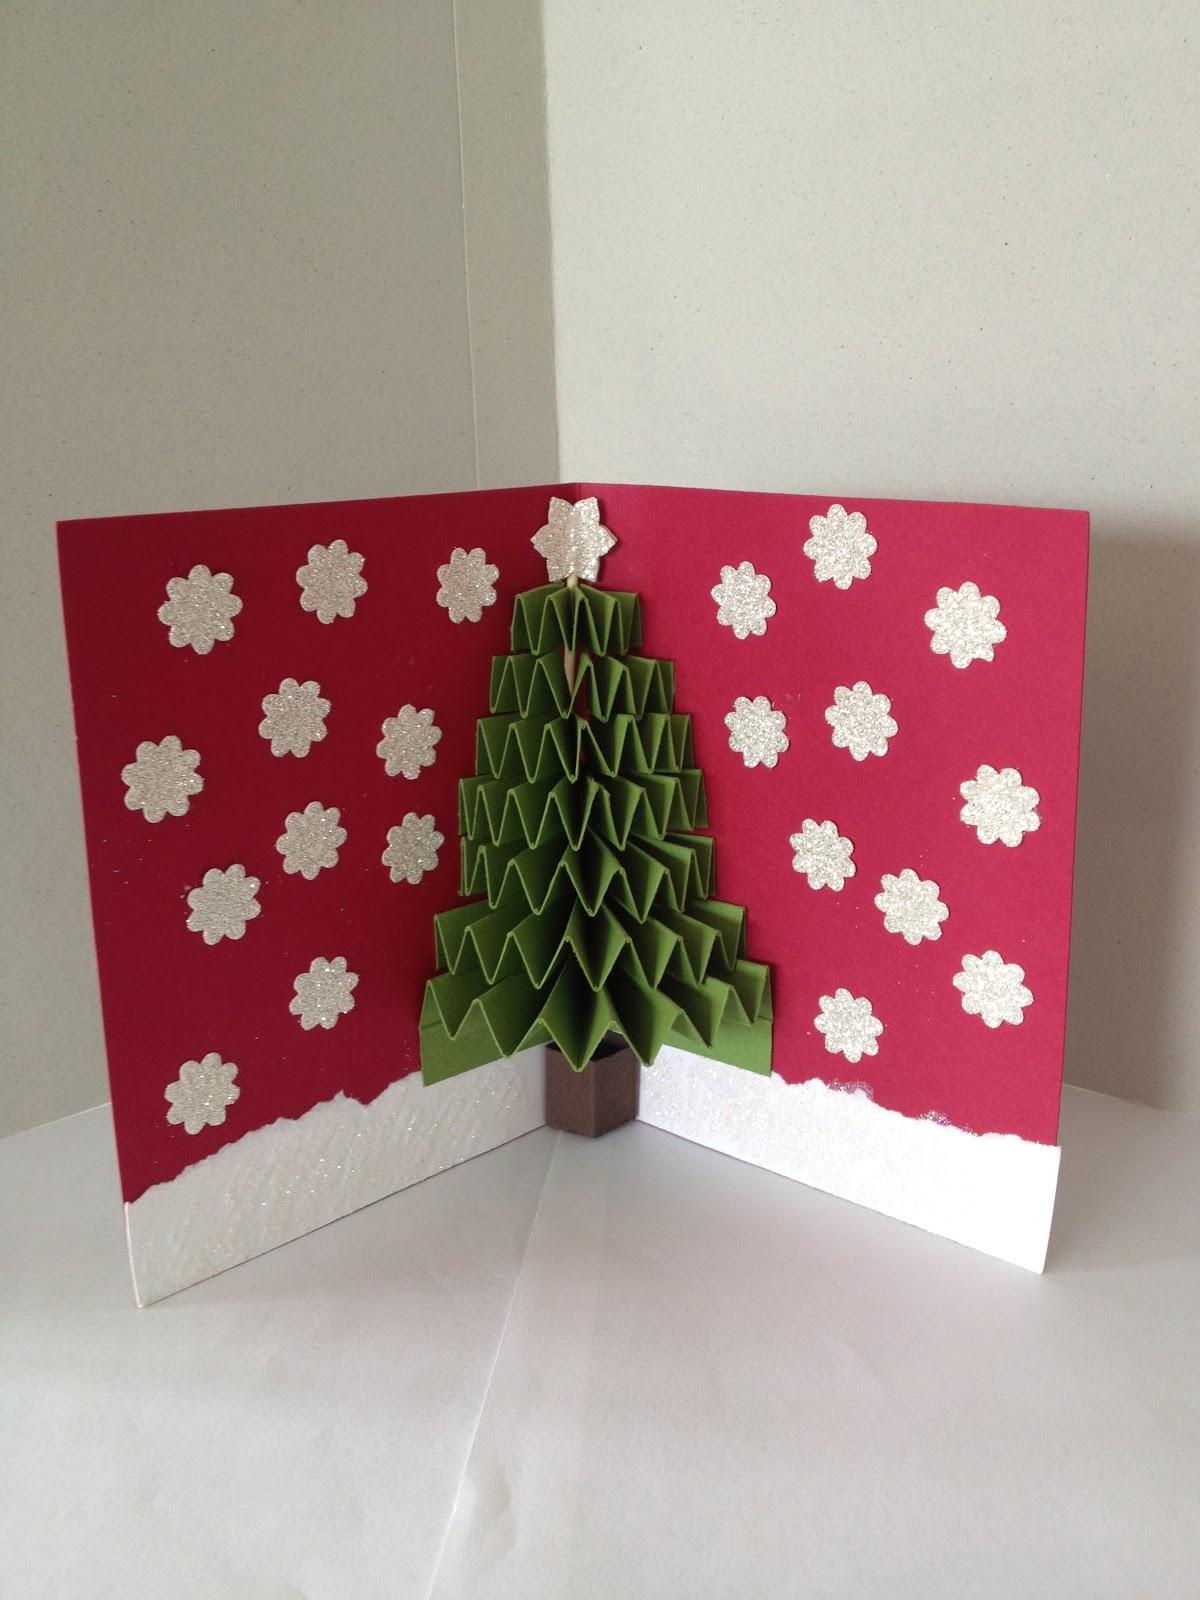 Handmade Christmas Card Making Ideas Part - 36: Christmas+Tree+Card+Inner+2. 99923685451899641_AGzCrIwy_c. Craft-ideas- Christmas-card-tree